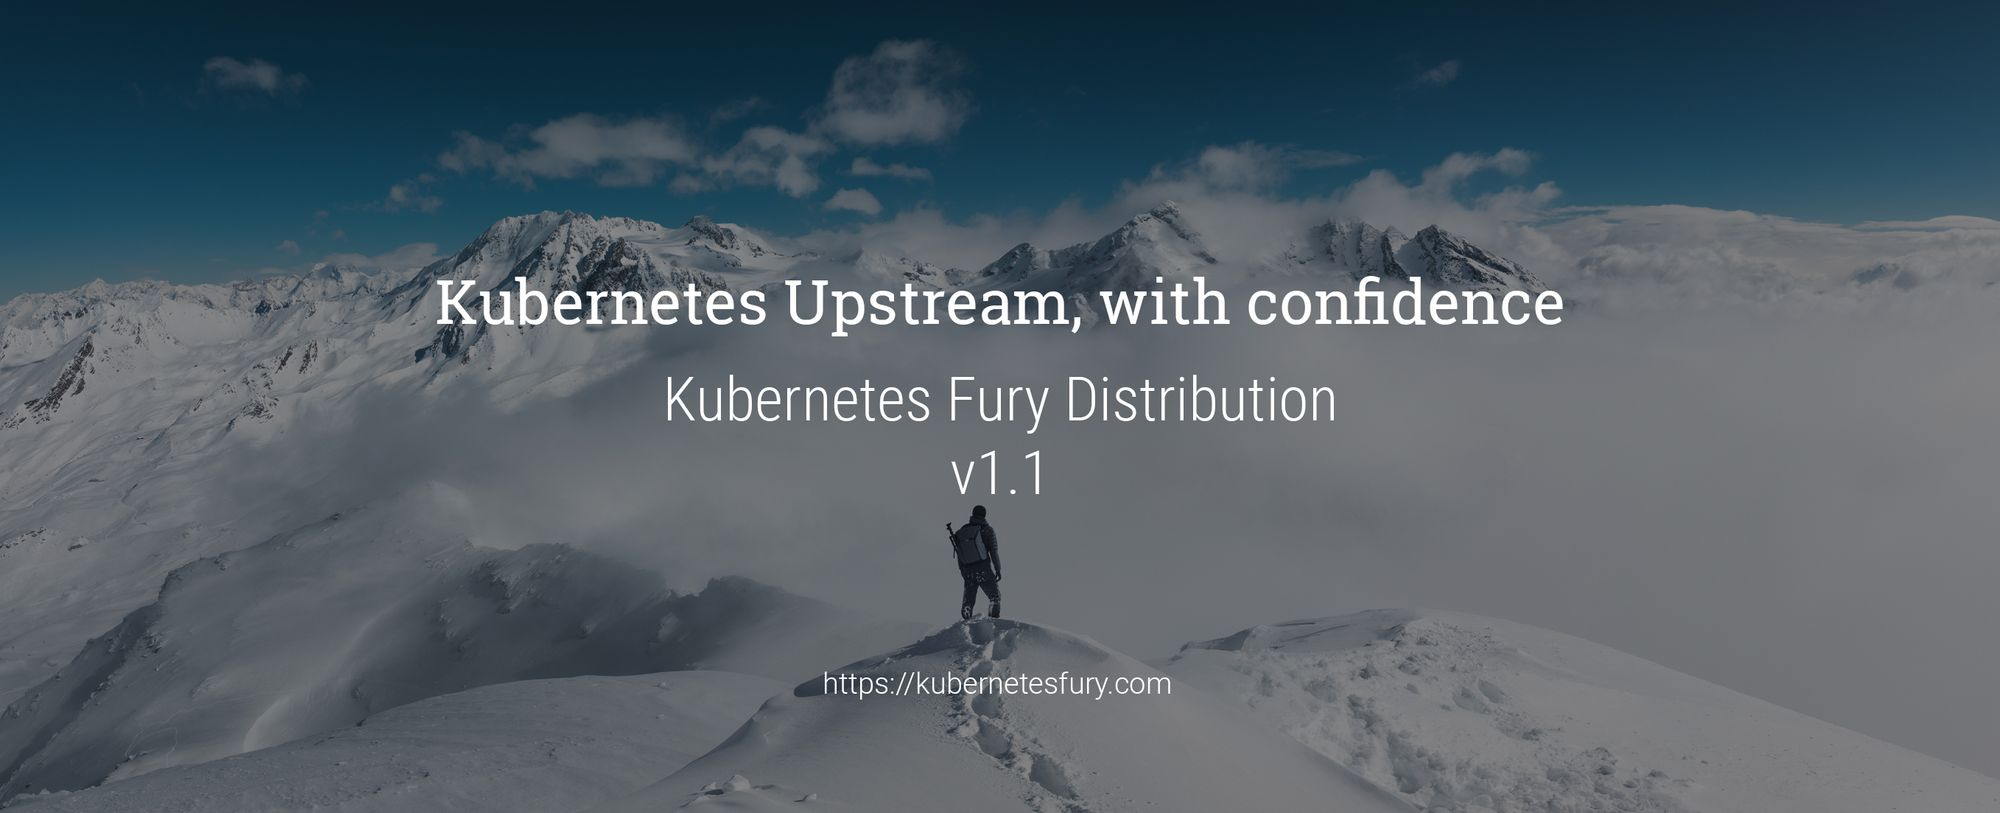 Announcing our latest release of  Kubernetes Fury Distribution (KFD) - Fury v1.1